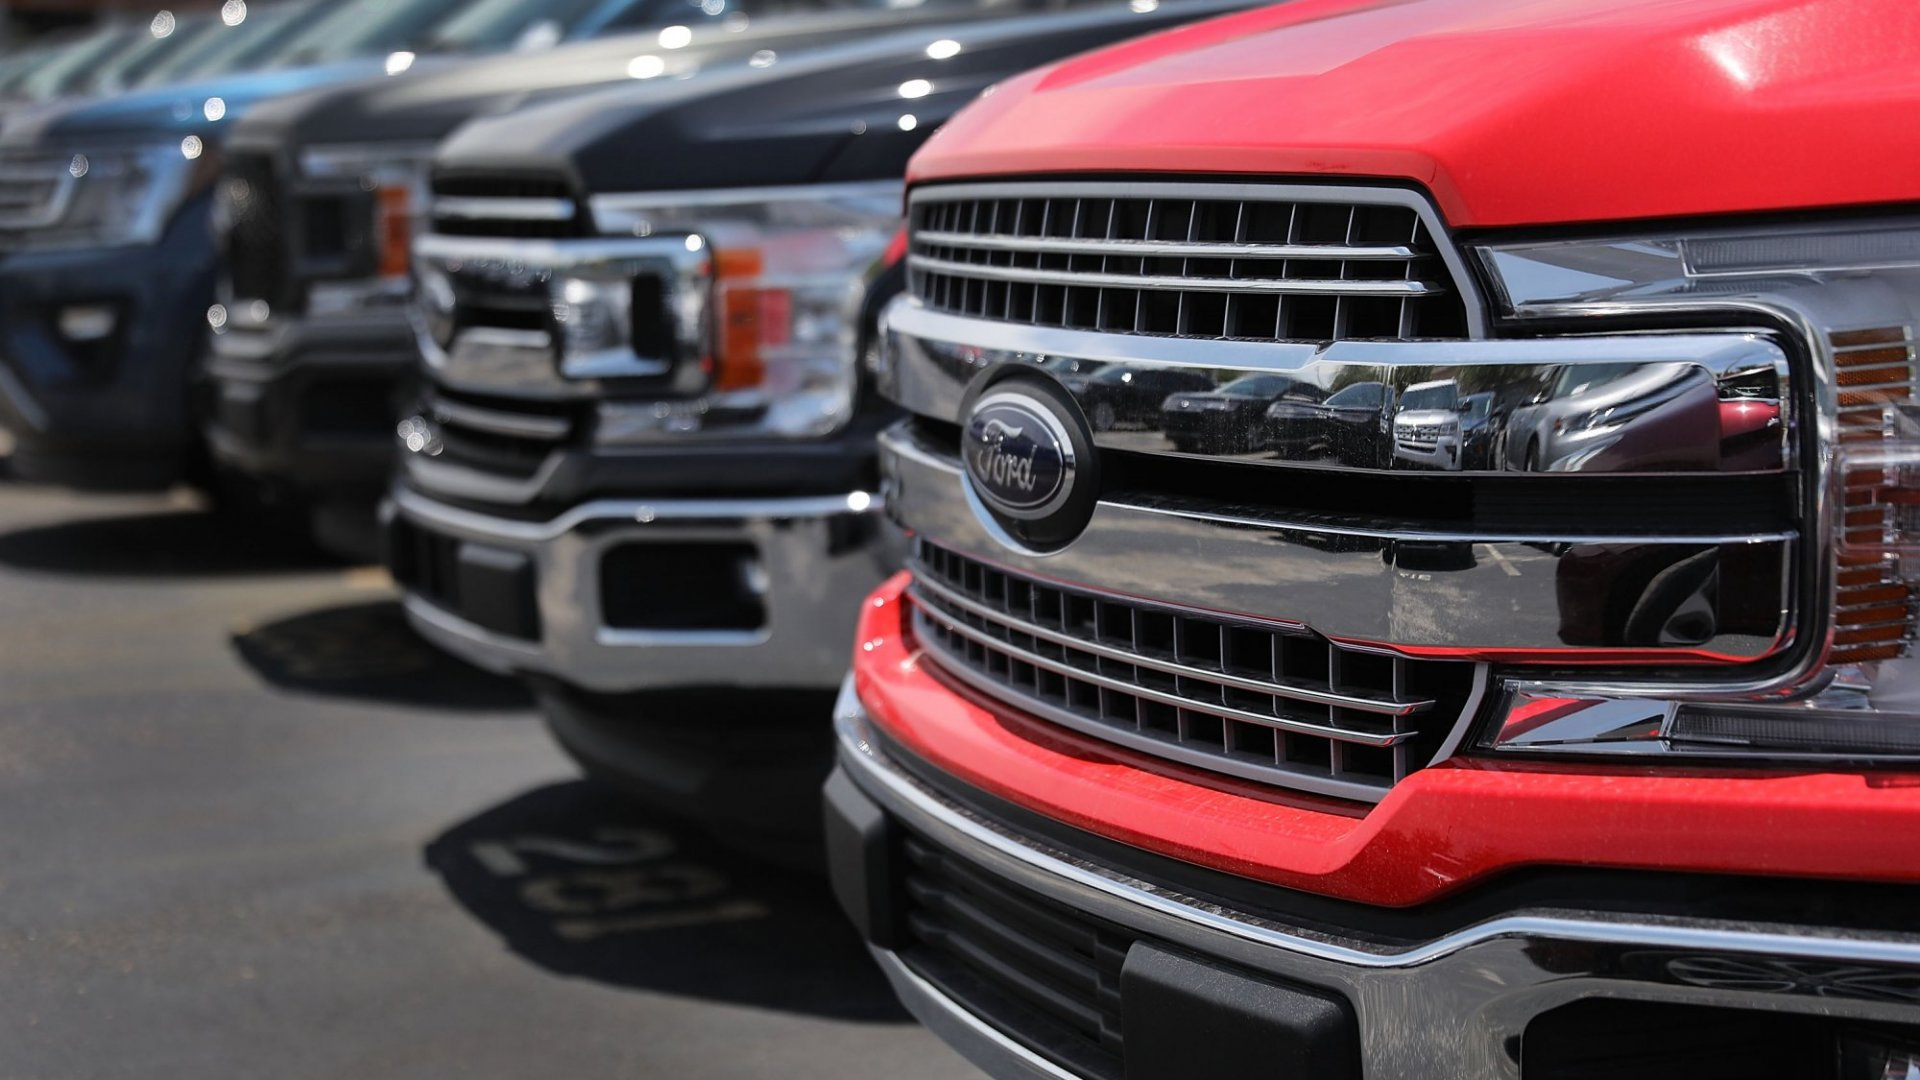 Ford's All Electric F-150 Pickup Truck Prototype Tows 1.25 Million Pounds